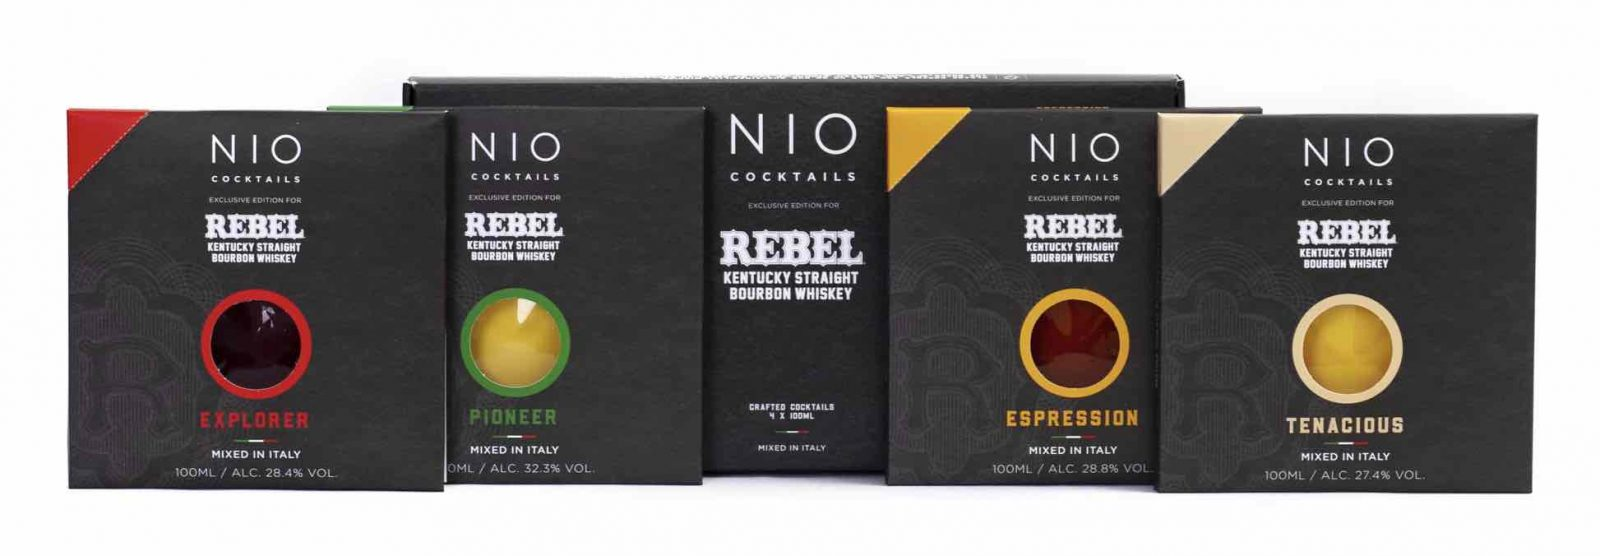 NIO Cocktails Launches Limited-Edition Rebel Bourbon Whiskey Cocktail Collection for Father's Day